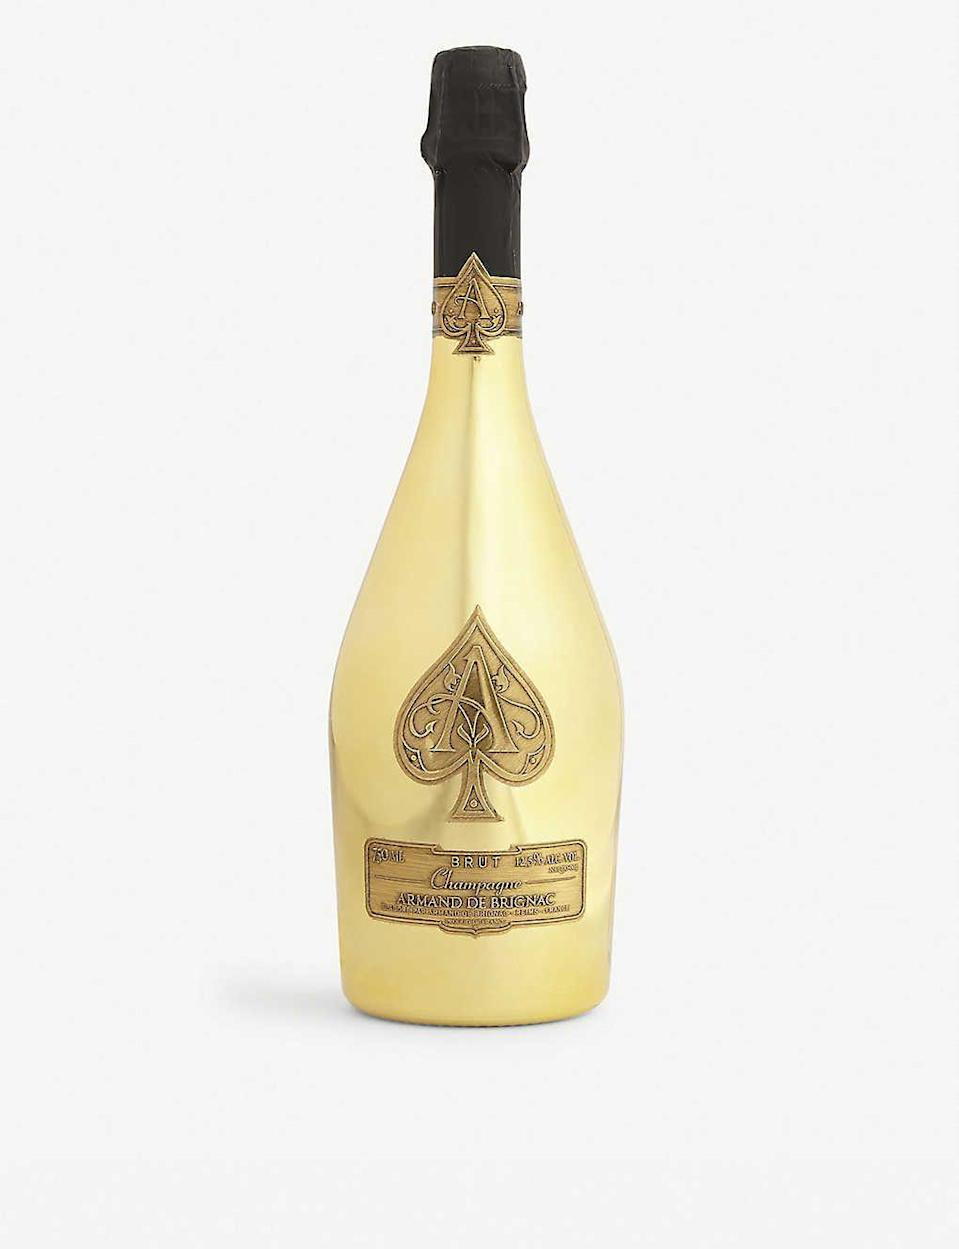 """<p><strong>Armand de Brignac</strong></p><p>Armand de Brignac Brut Gold </p><p><strong>$299.99</strong></p><p><a href=""""https://go.redirectingat.com?id=74968X1596630&url=http%3A%2F%2Fwww.wine.com%2Fv6%2FArmand-de-Brignac-Brut-Gold-Ace-of-Spades-with-Gift-Box%2Fwine%2F91199%2FDetail.aspx&sref=https%3A%2F%2Fwww.harpersbazaar.com%2Fculture%2Ftravel-dining%2Fg33503091%2Fbest-celebrity-owned-wine-brands%2F"""" rel=""""nofollow noopener"""" target=""""_blank"""" data-ylk=""""slk:Shop Now"""" class=""""link rapid-noclick-resp"""">Shop Now</a></p><p>Few things are more luxe than pouring yourself a glass of Jay-Z's Armand de Brignac brut. With hints of peach, apricot, orange blossom, and brioche, it's a perfectly light yet slightly toasty sip perfect for kicking off any celebration. The brut's lavish gold-mirrored bottle also makes the champagne an ideal gift. </p>"""